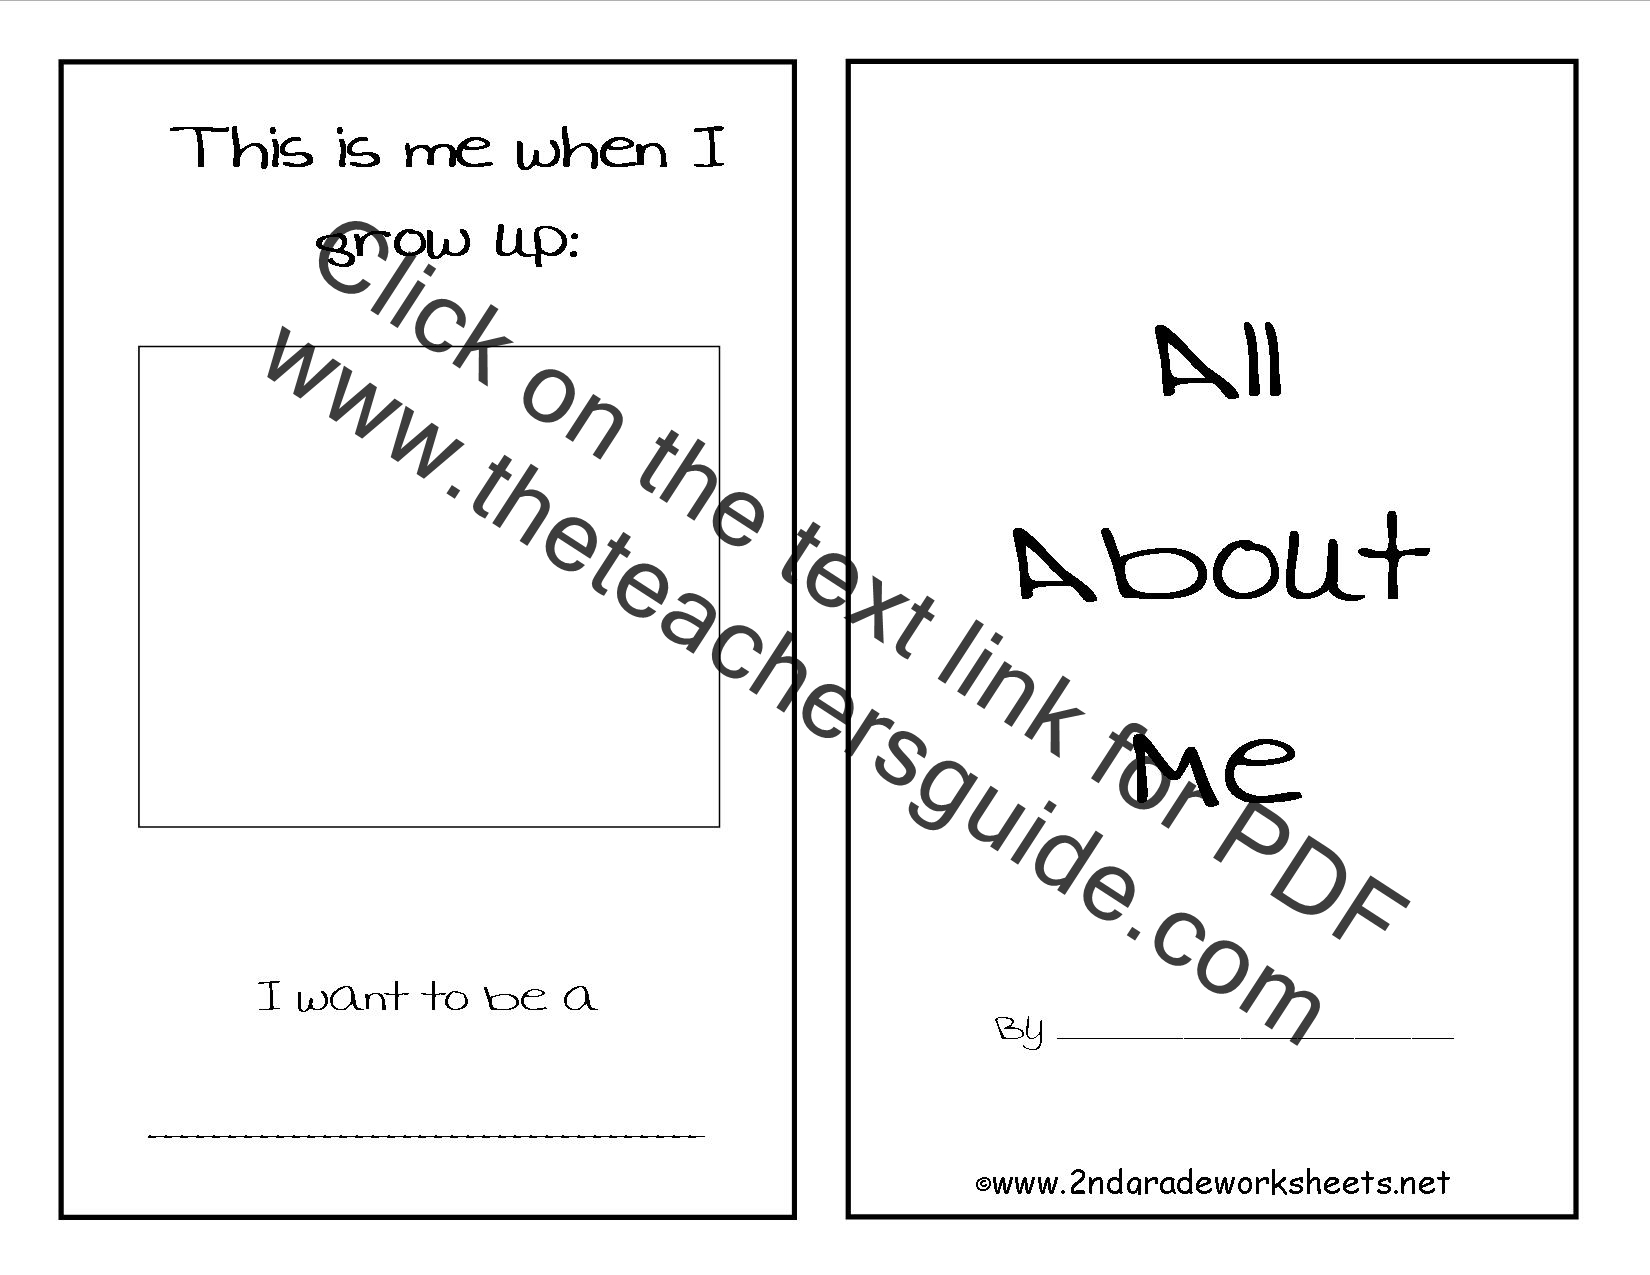 photograph relating to All About Me Free Printable Worksheets called Absolutely free Back again towards College or university Worksheets and Printouts